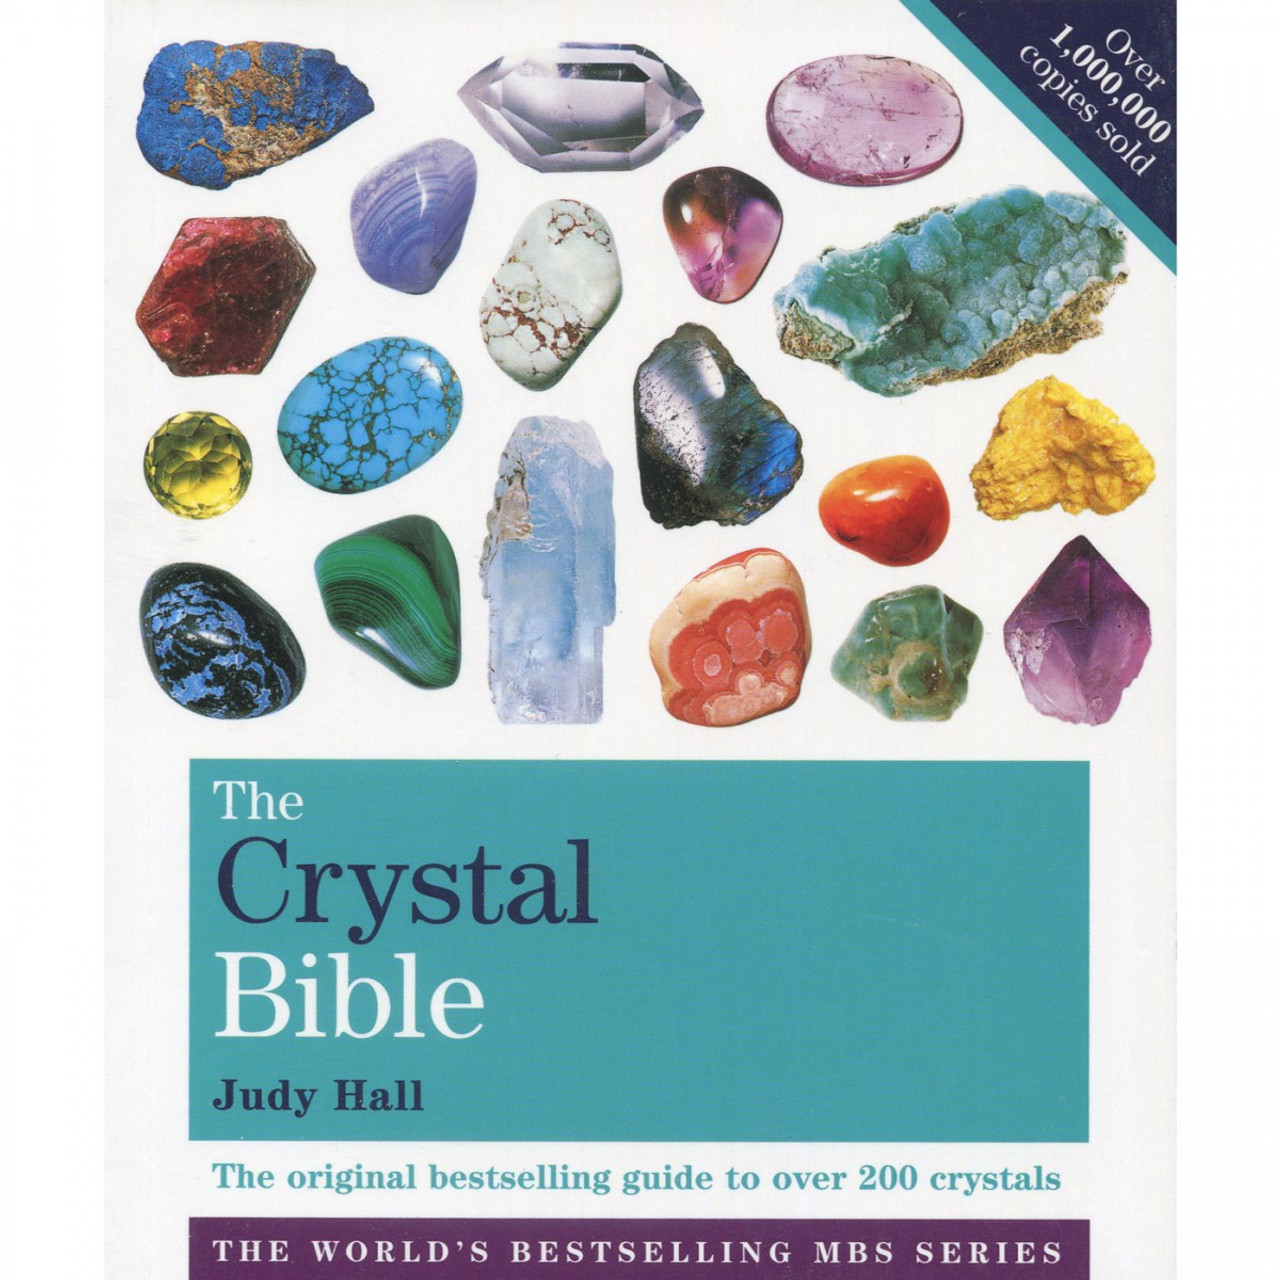 The Crystal Bible, Volume 1 by Judy Hall